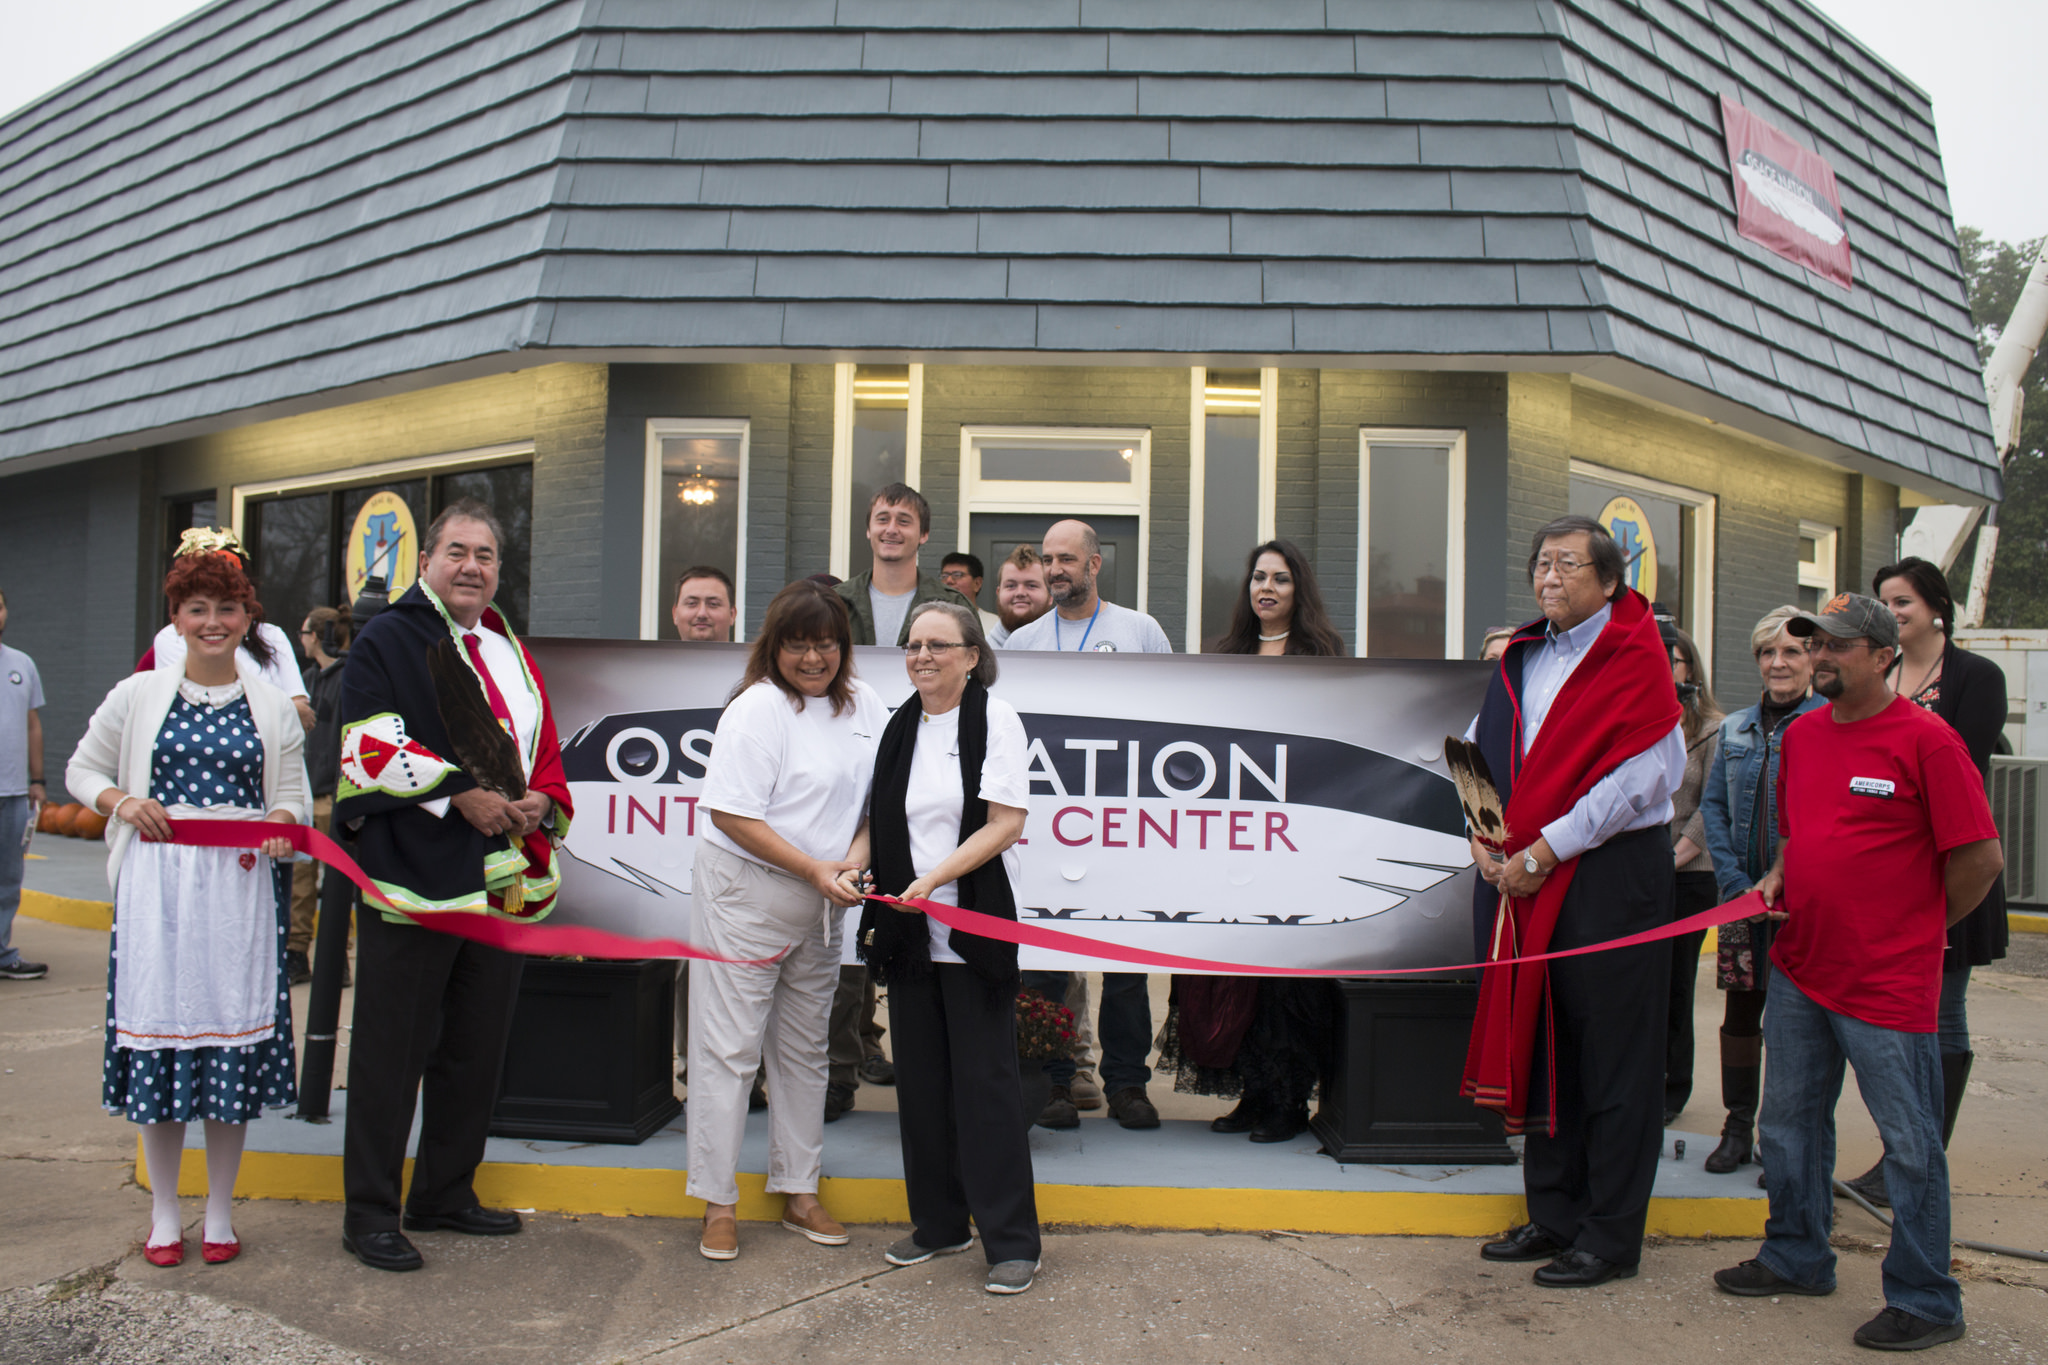 Osage Nation Interpretive Center officially opens for one week